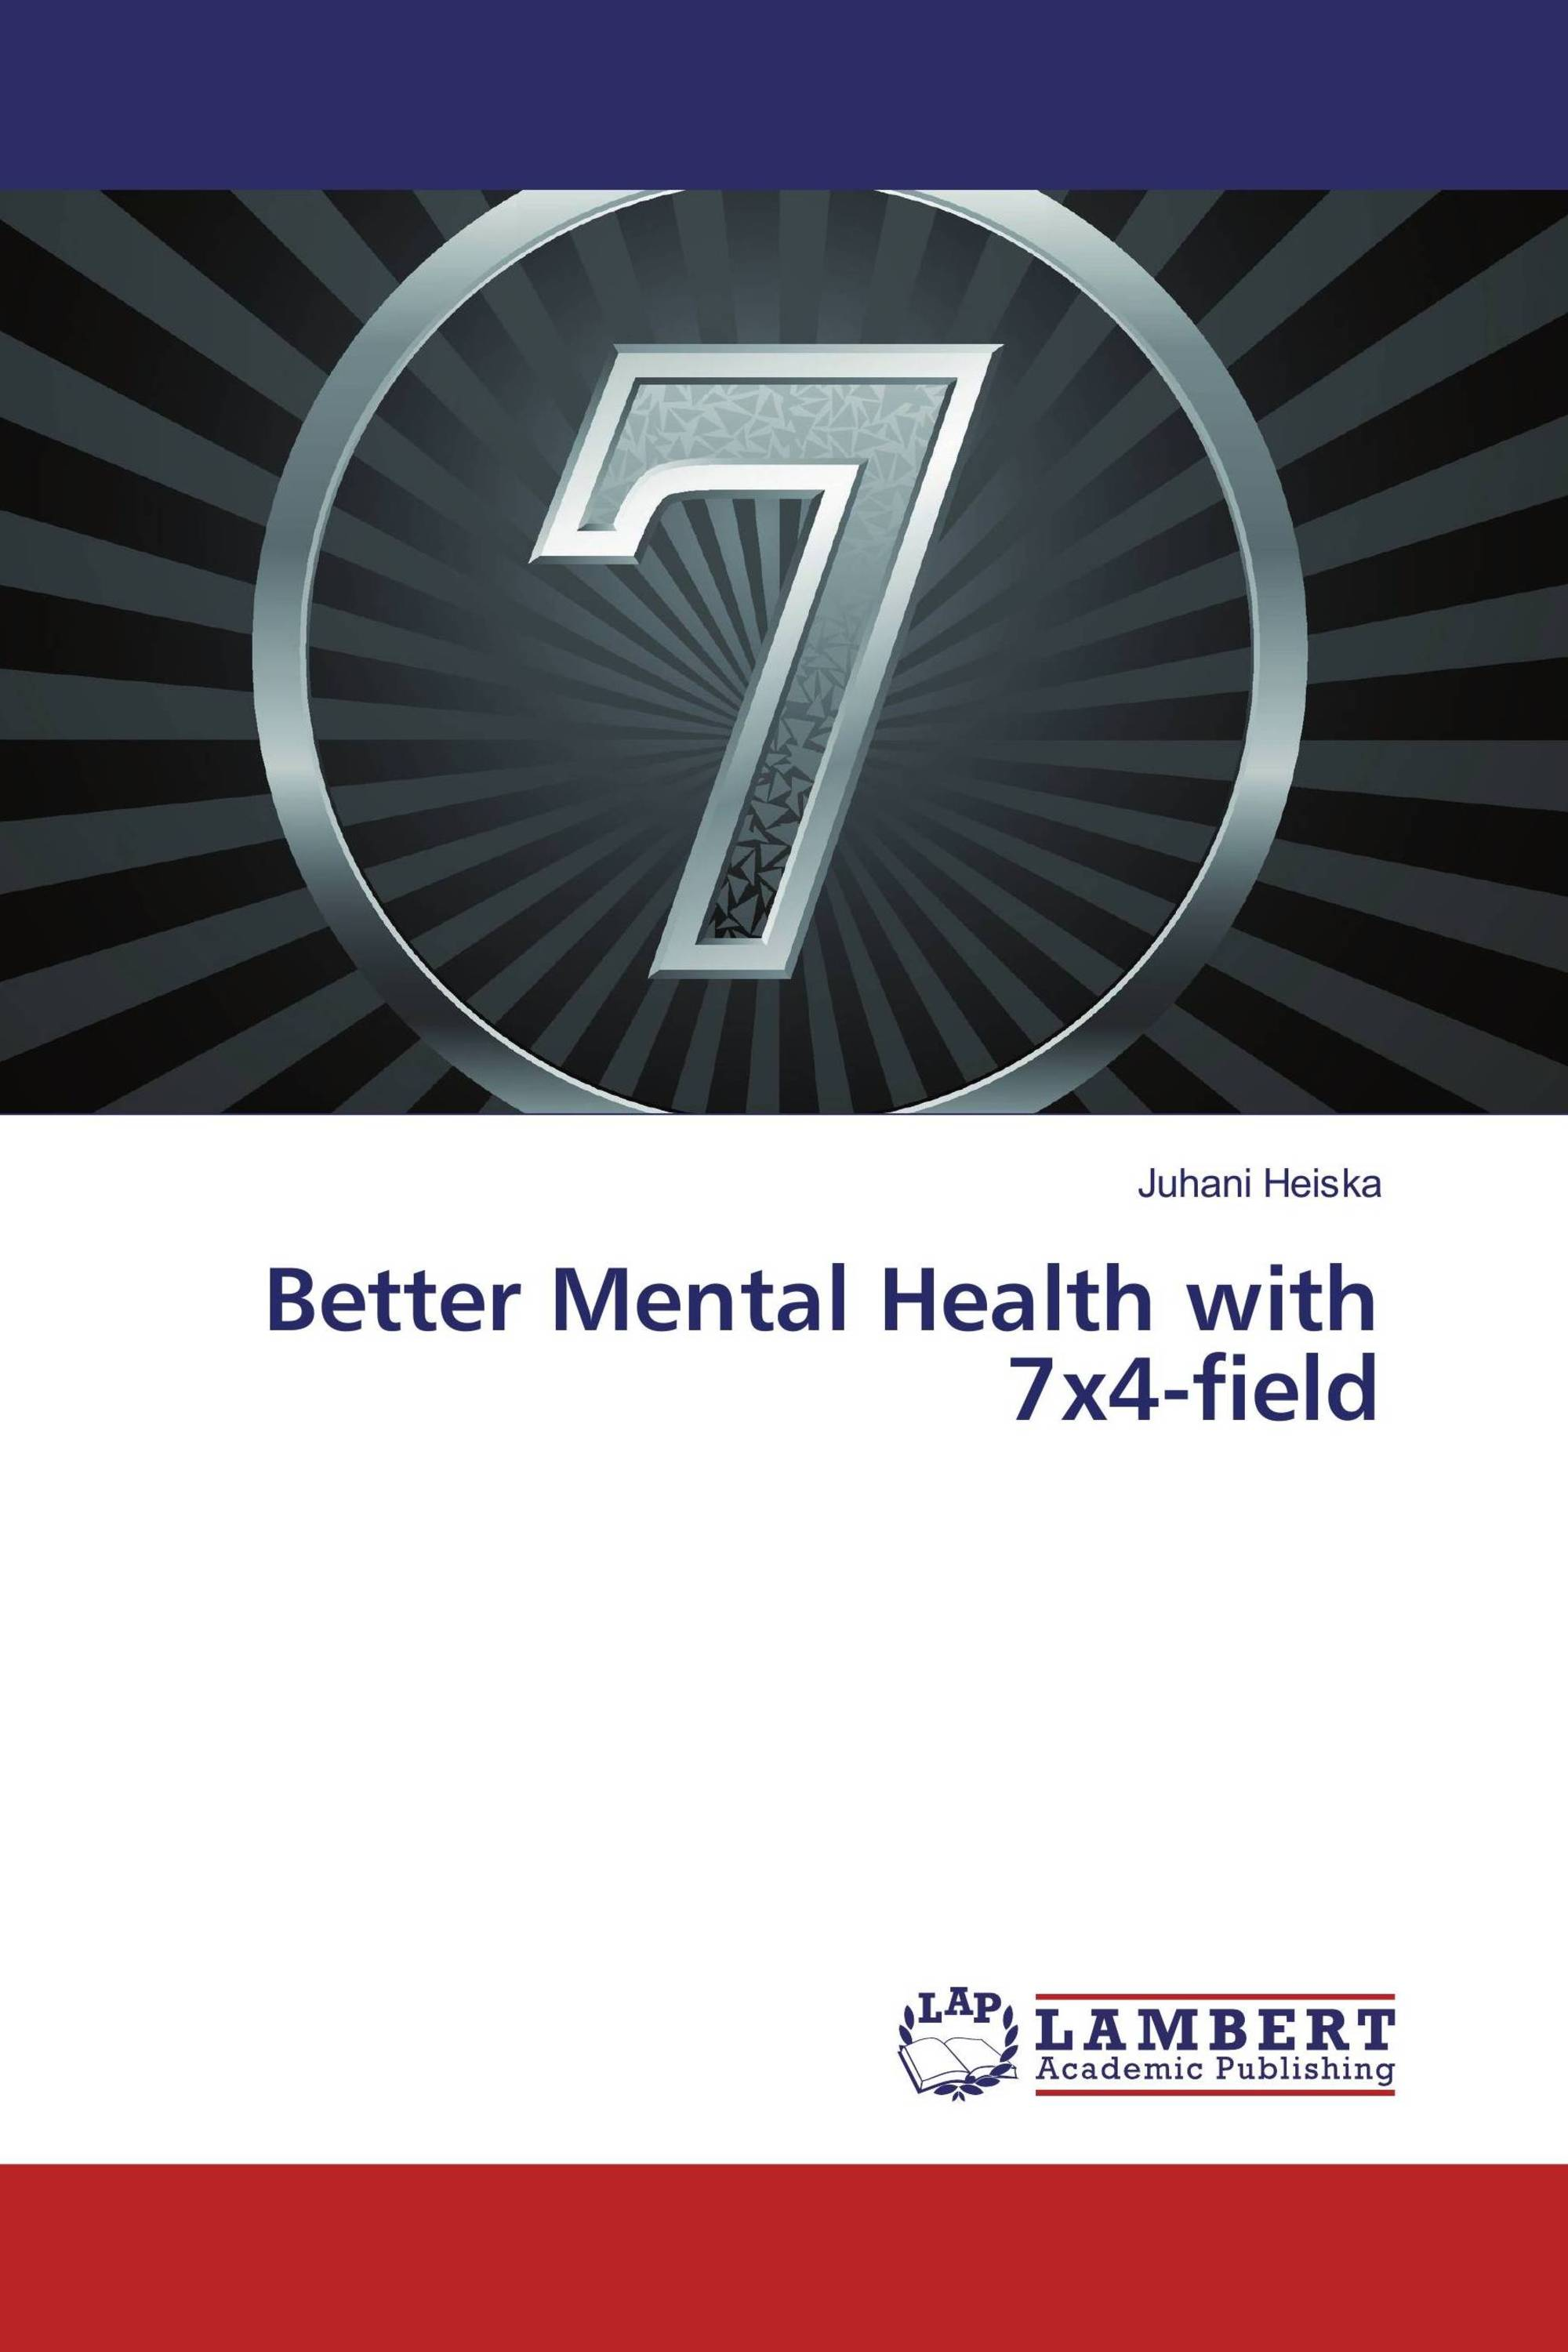 Better Mental Health with 7x4-field